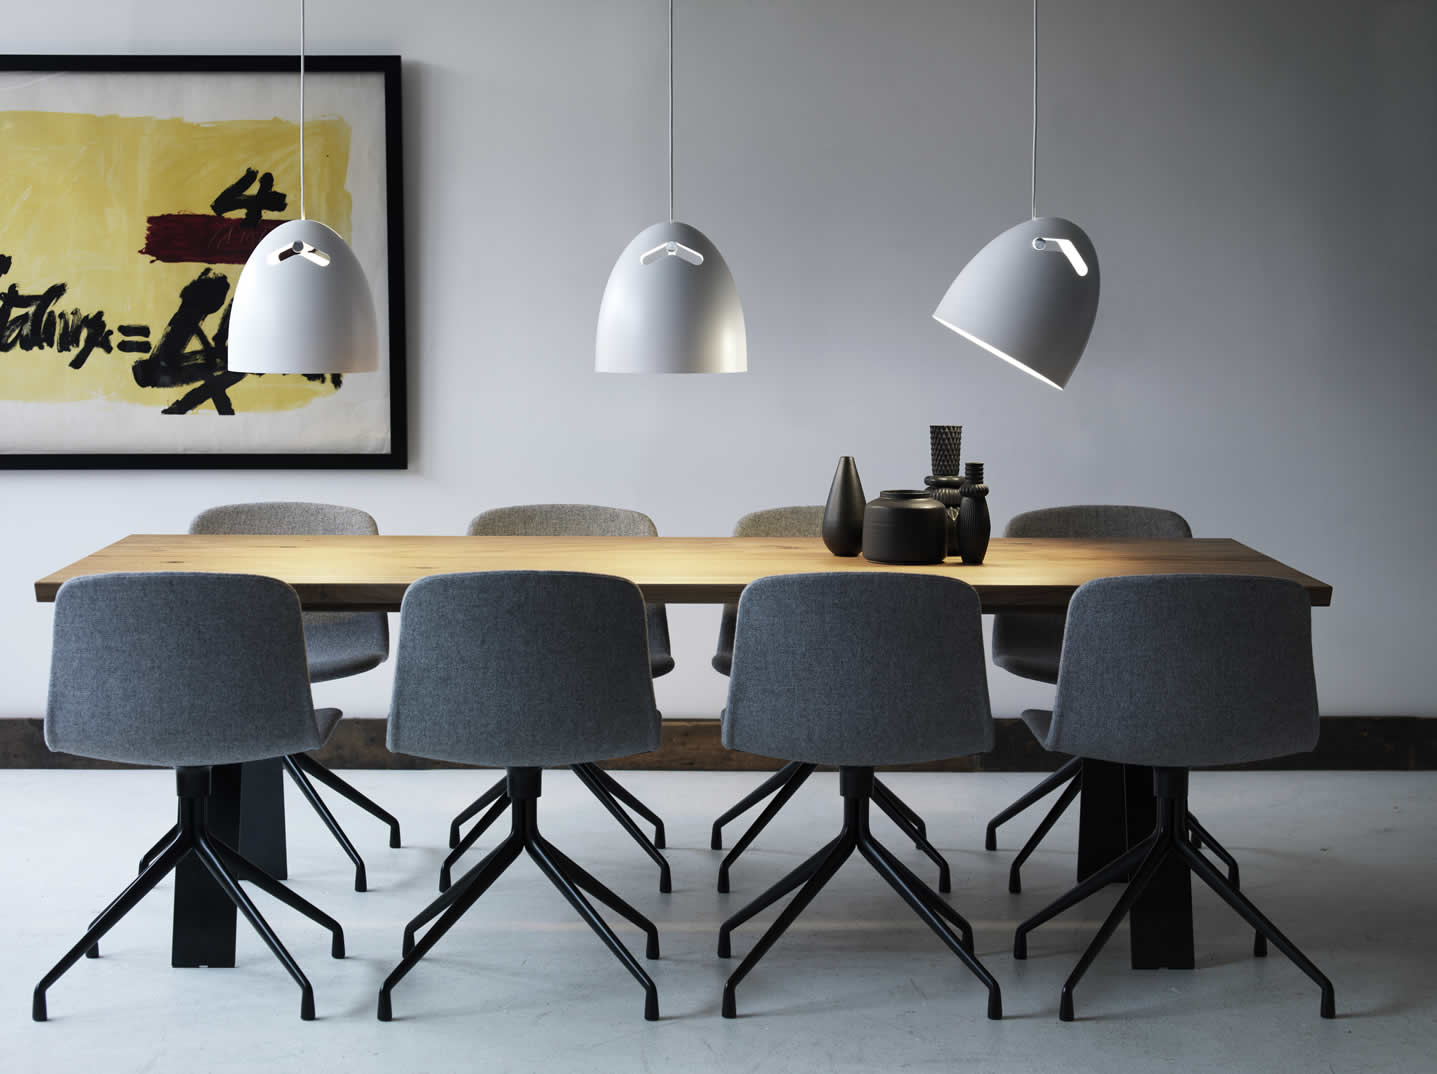 design hanglamp ideaal voor boven de eettafel. Black Bedroom Furniture Sets. Home Design Ideas